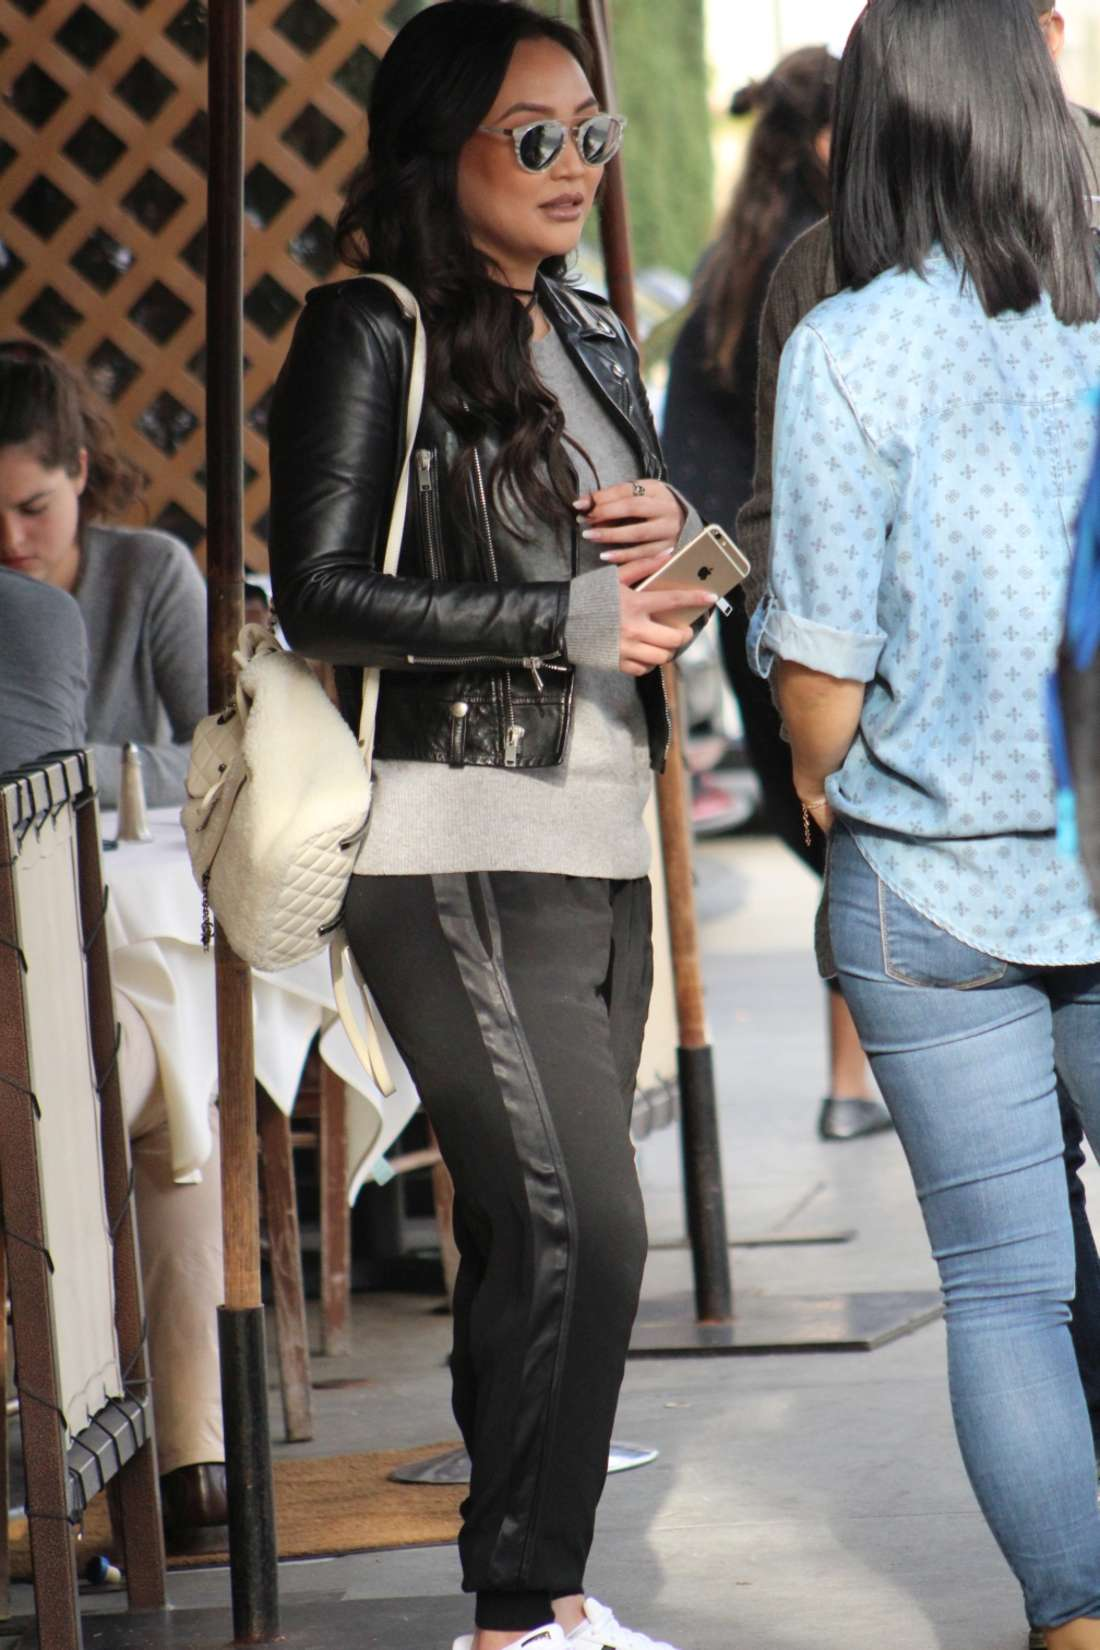 Dorothy Wang Arriving To Shoot Episode in Los Angeles